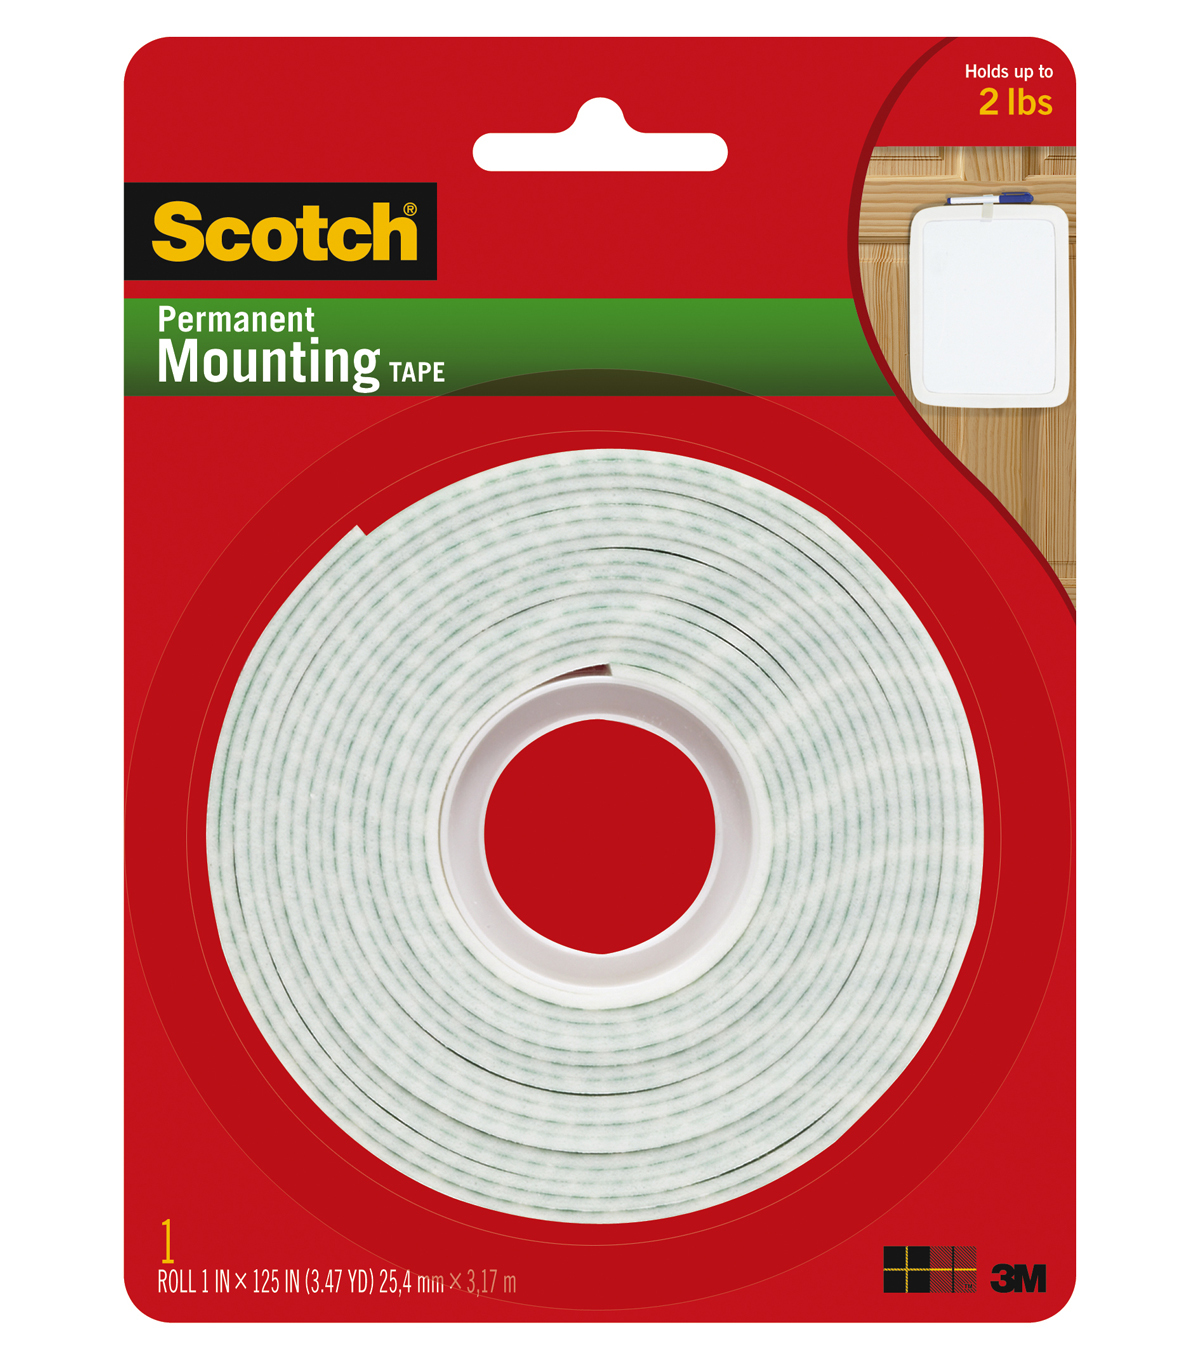 Scotch Mounting Tape Long